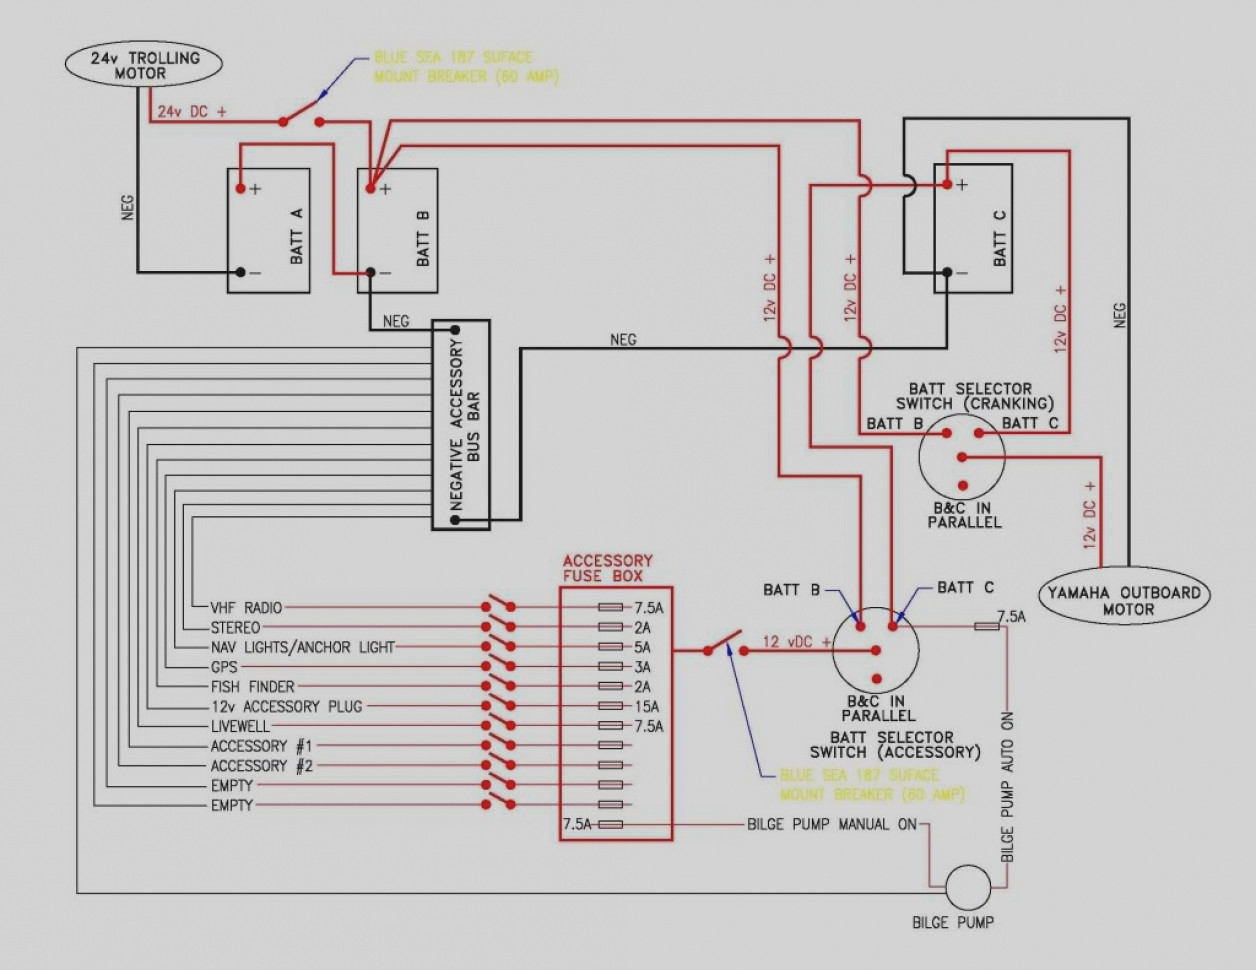 suzuki df140 wiring diagram | free wiring diagram suzuki xl7 wiring diagram